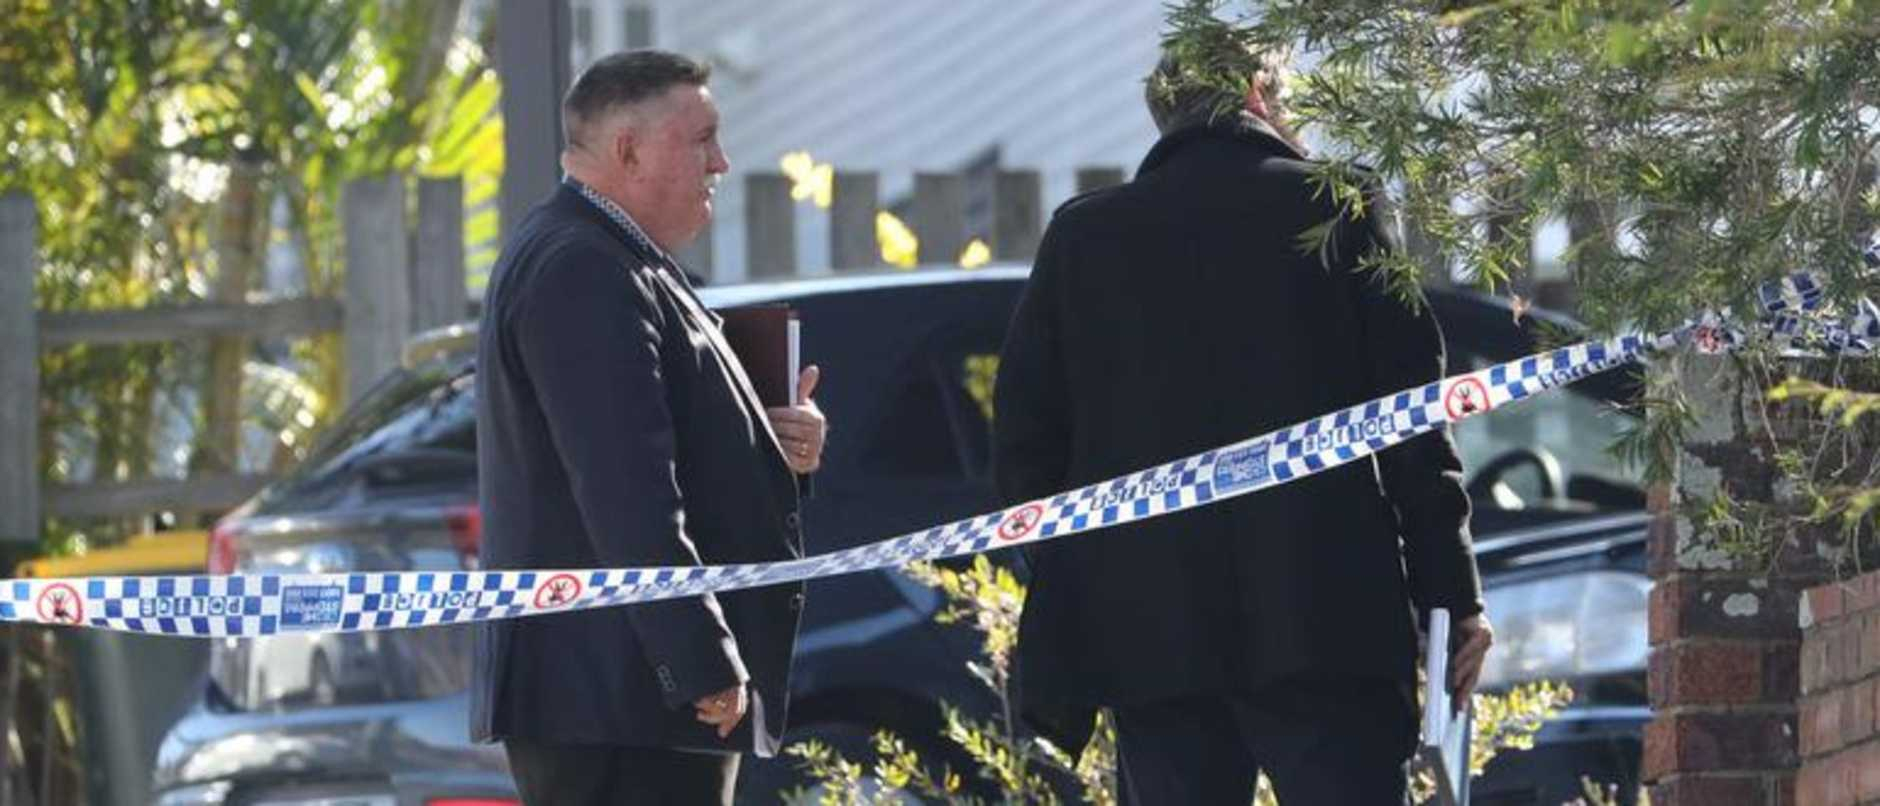 A man has been charged with attempted murder after allegedly stabbing a police officer in the face.